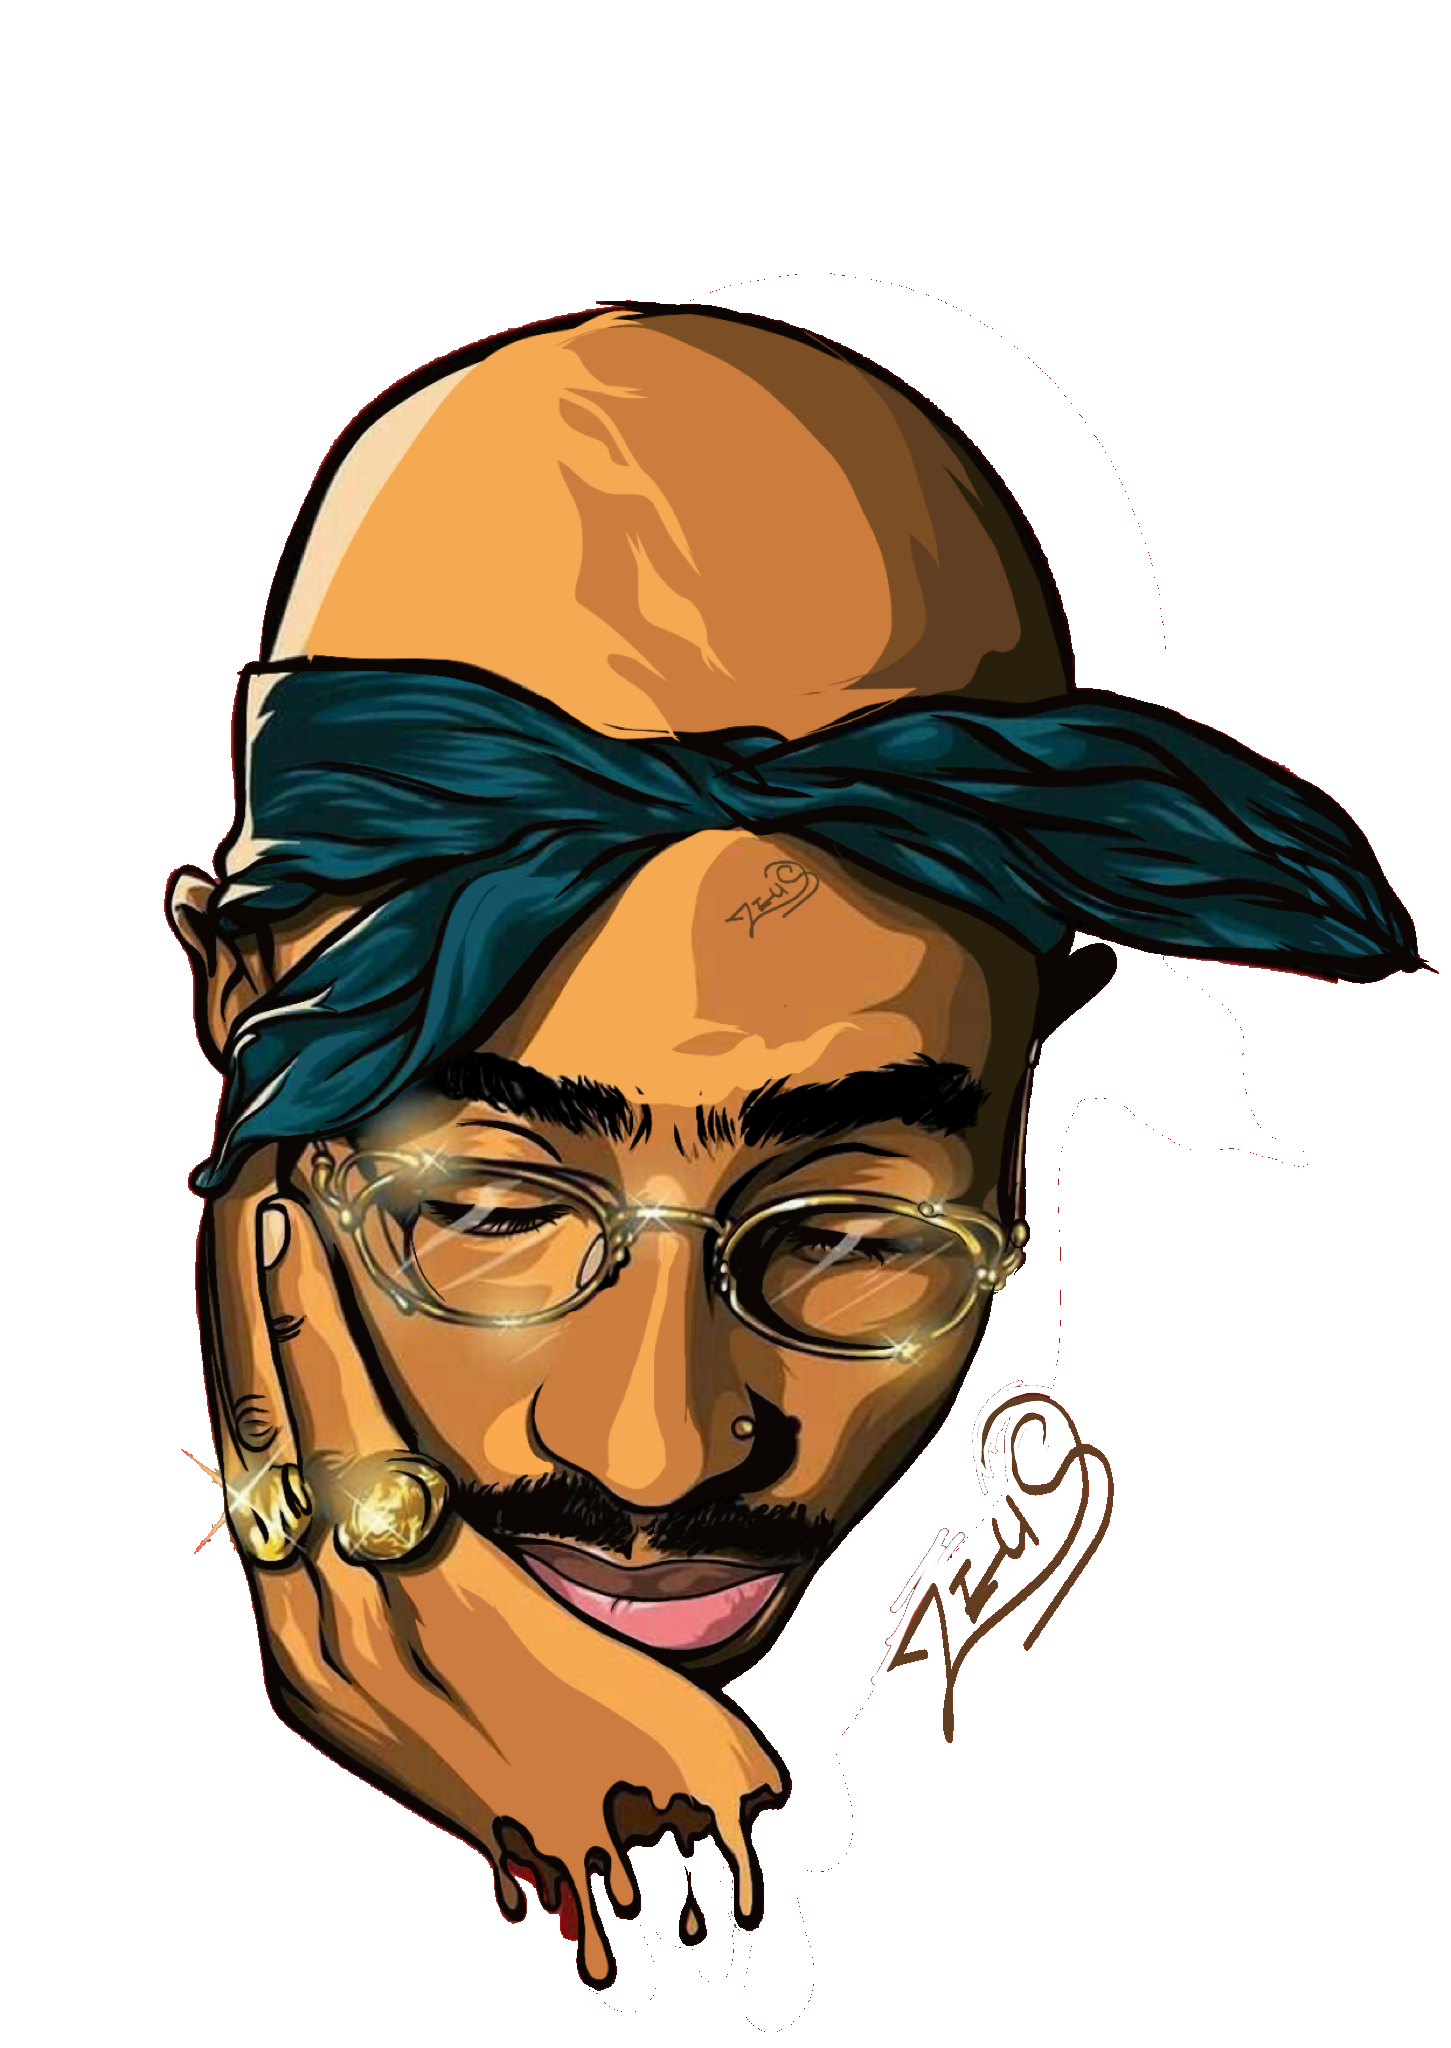 2pac transparent animated